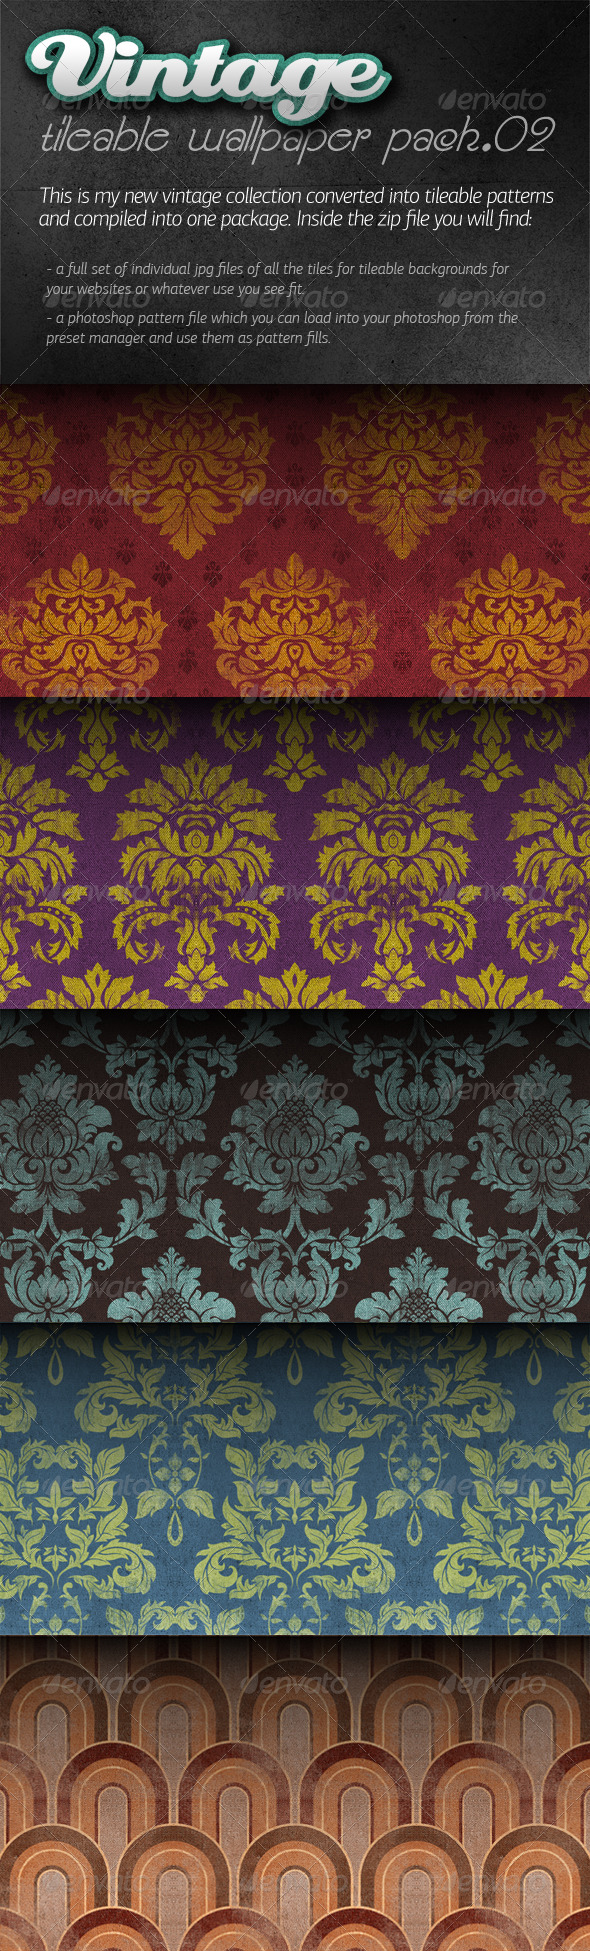 Vintage Tileable Wallpaper Pack 02 - Patterns Backgrounds